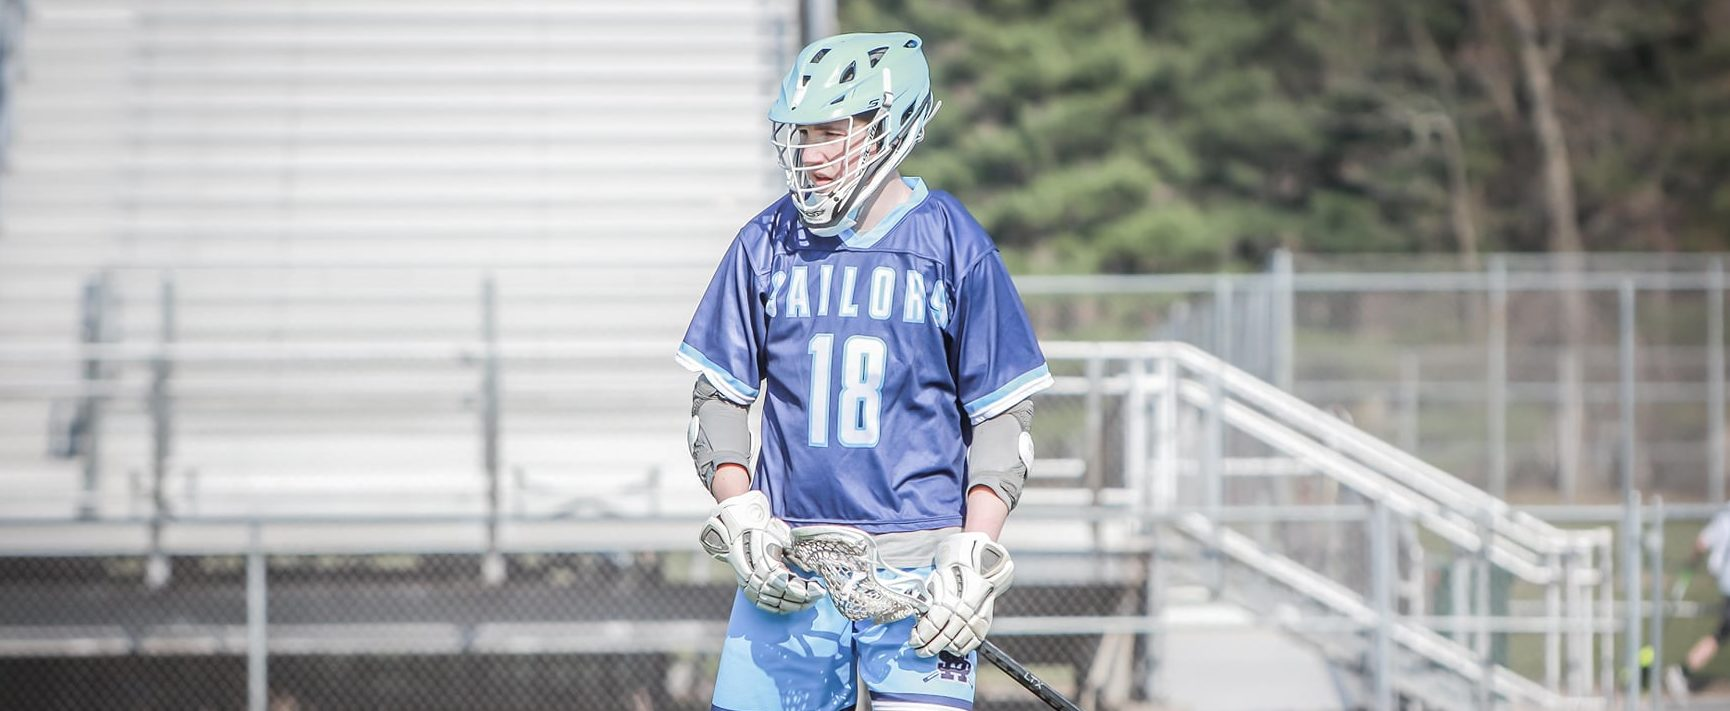 Junior Landon Taylor playing the leading role in the Mona Shores lacrosse team's amazing turnaround this spring